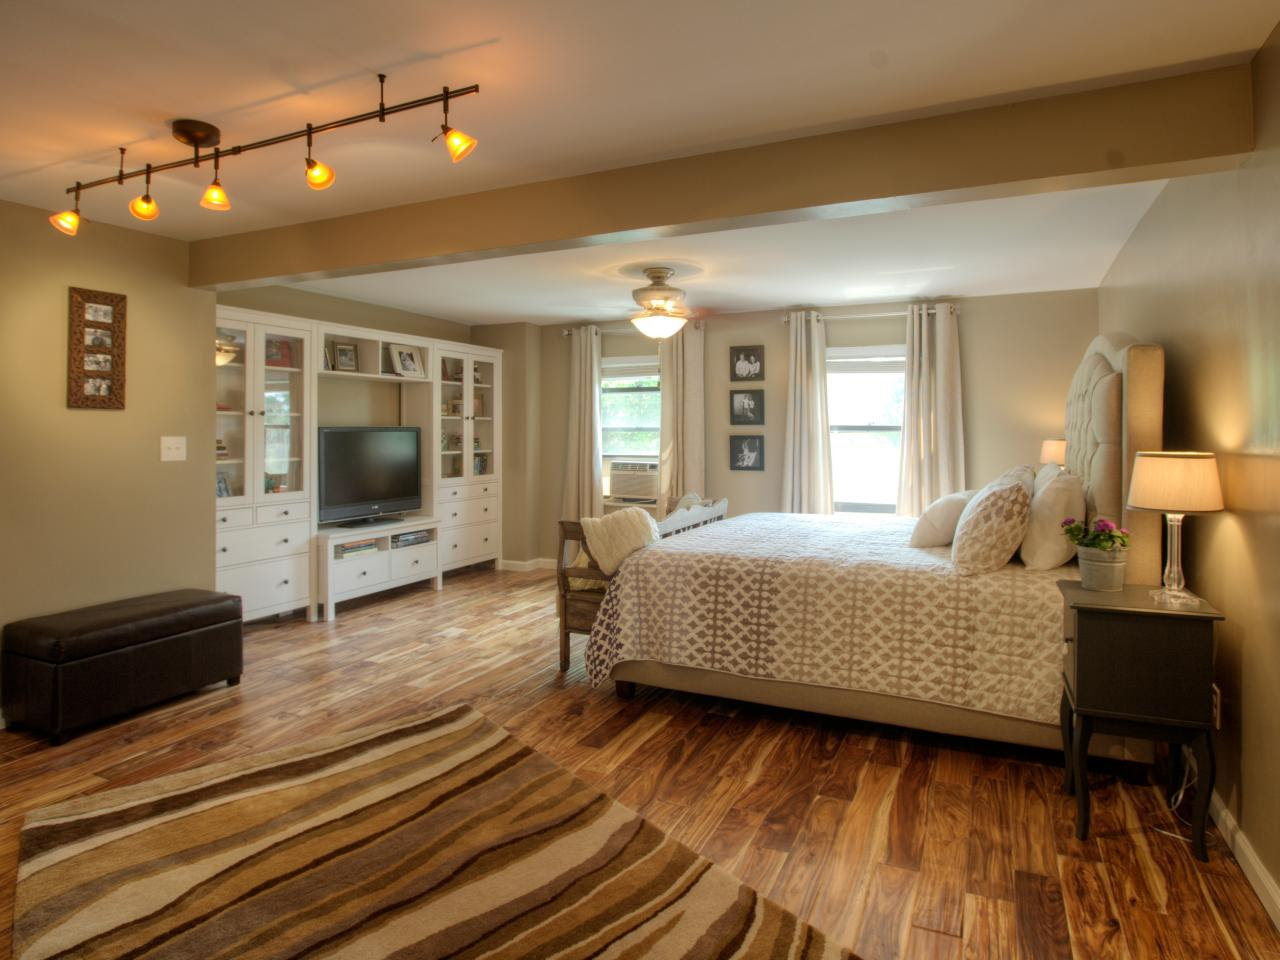 Run My Makeover Bedrooms With Hardwood Floors Bedroom Atmosphere Ideas Hgtv Before And After Bathroom Makeovers Kitchen Best Backyards Software Basement Apppie Org